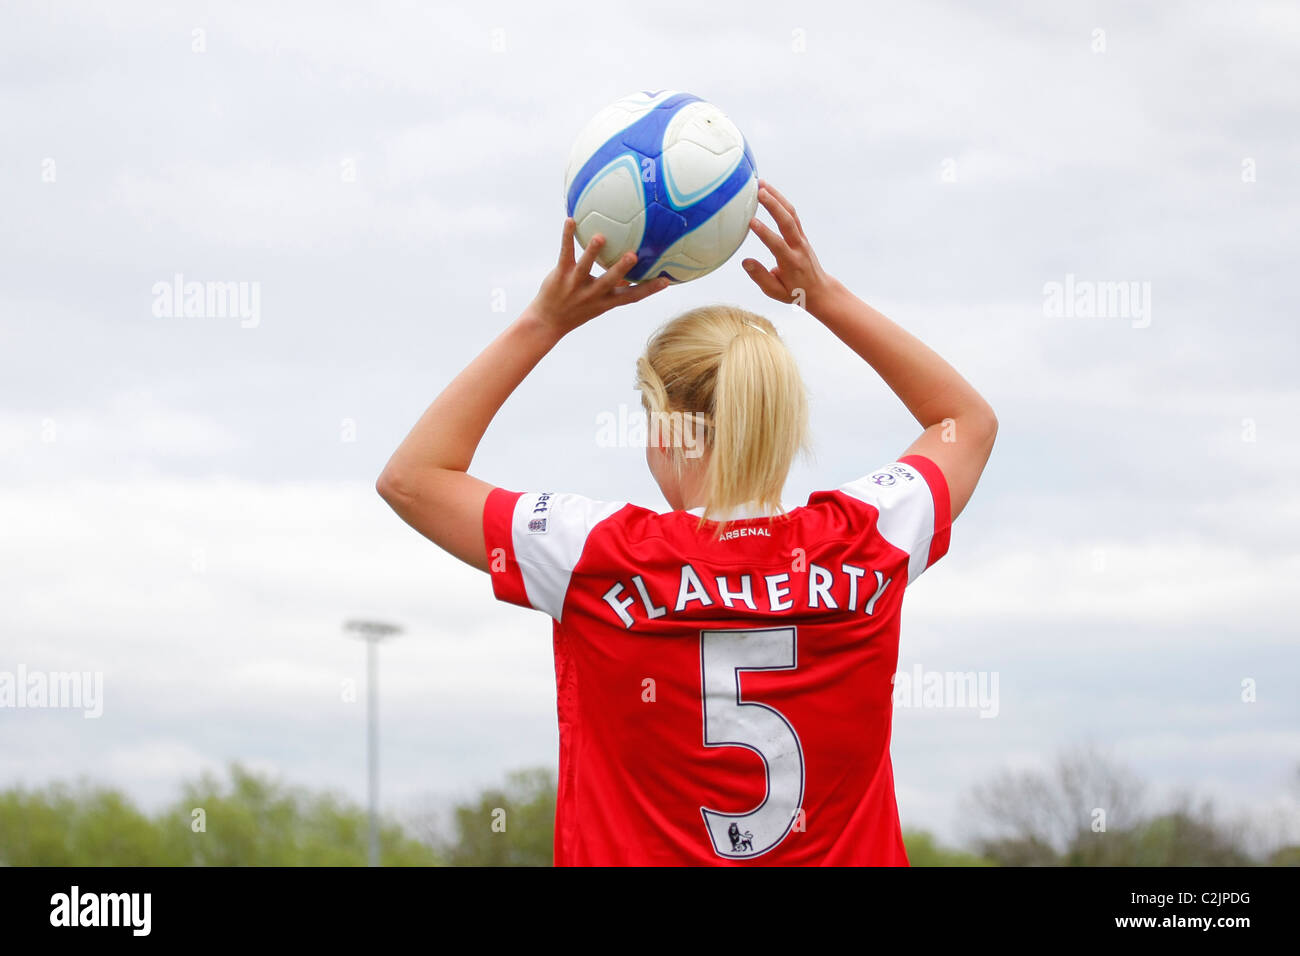 Scenes from the first match in WOMENS SUPER LEAGUE professional football series between CHELSEA & ARSENAL ladies - Stock Image